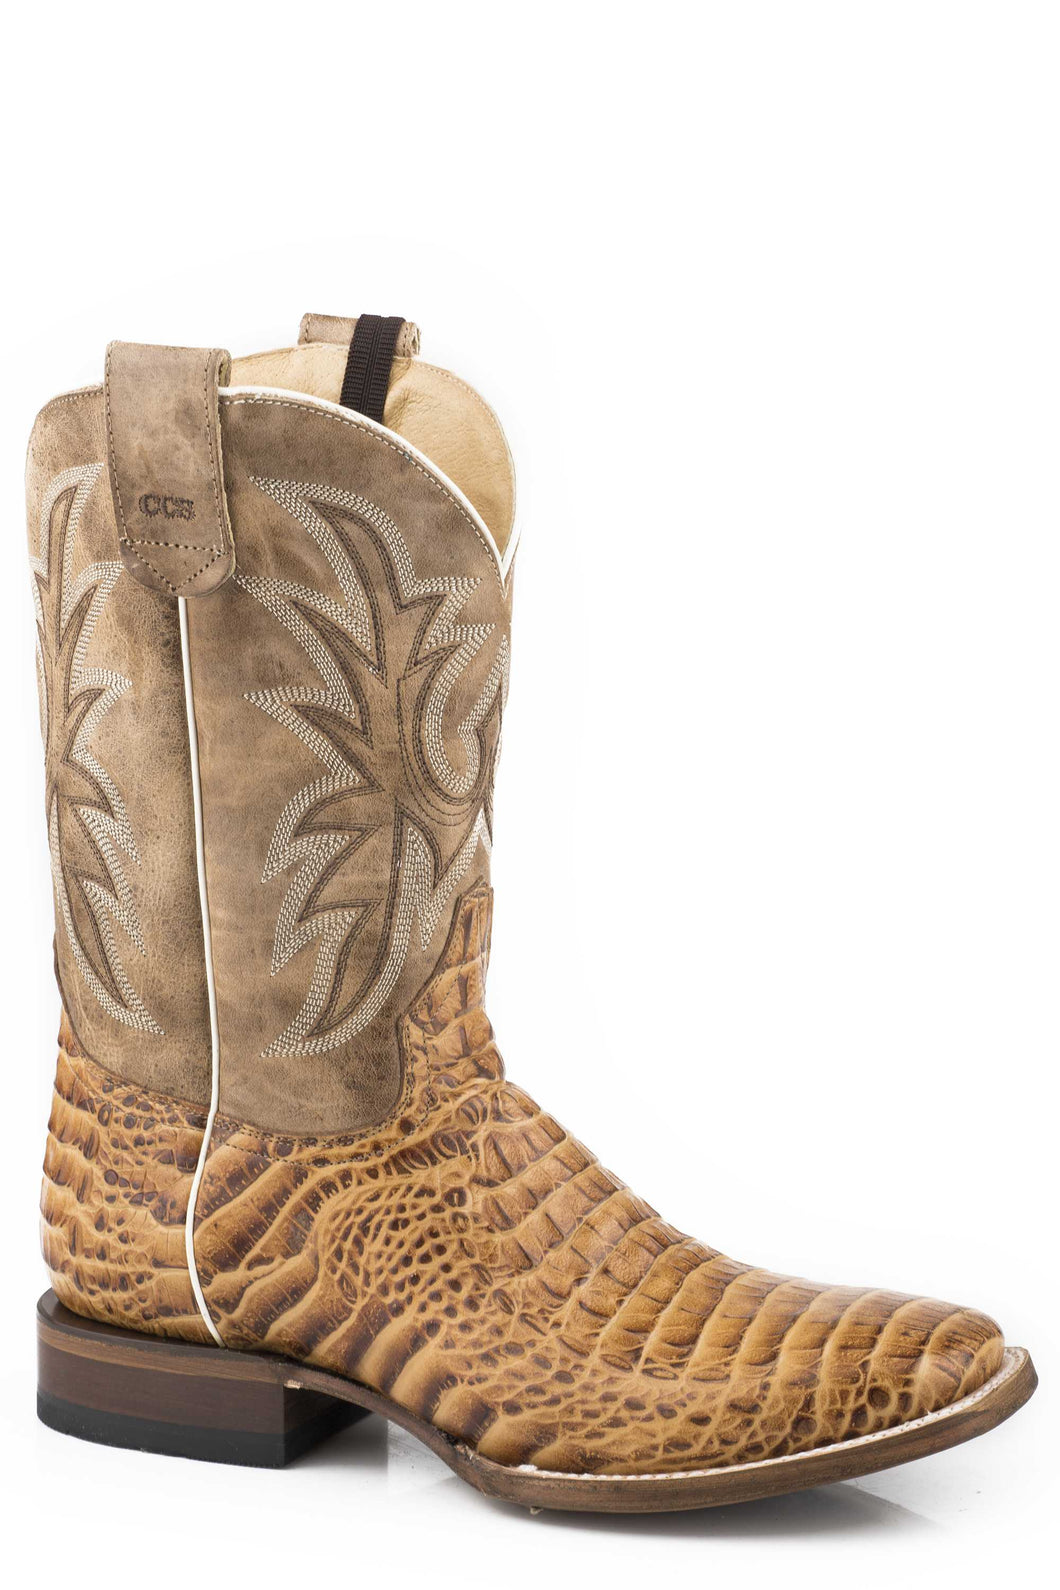 Pierce Ccs Boot Mens Boots Embossed Tan Caiman Vamp